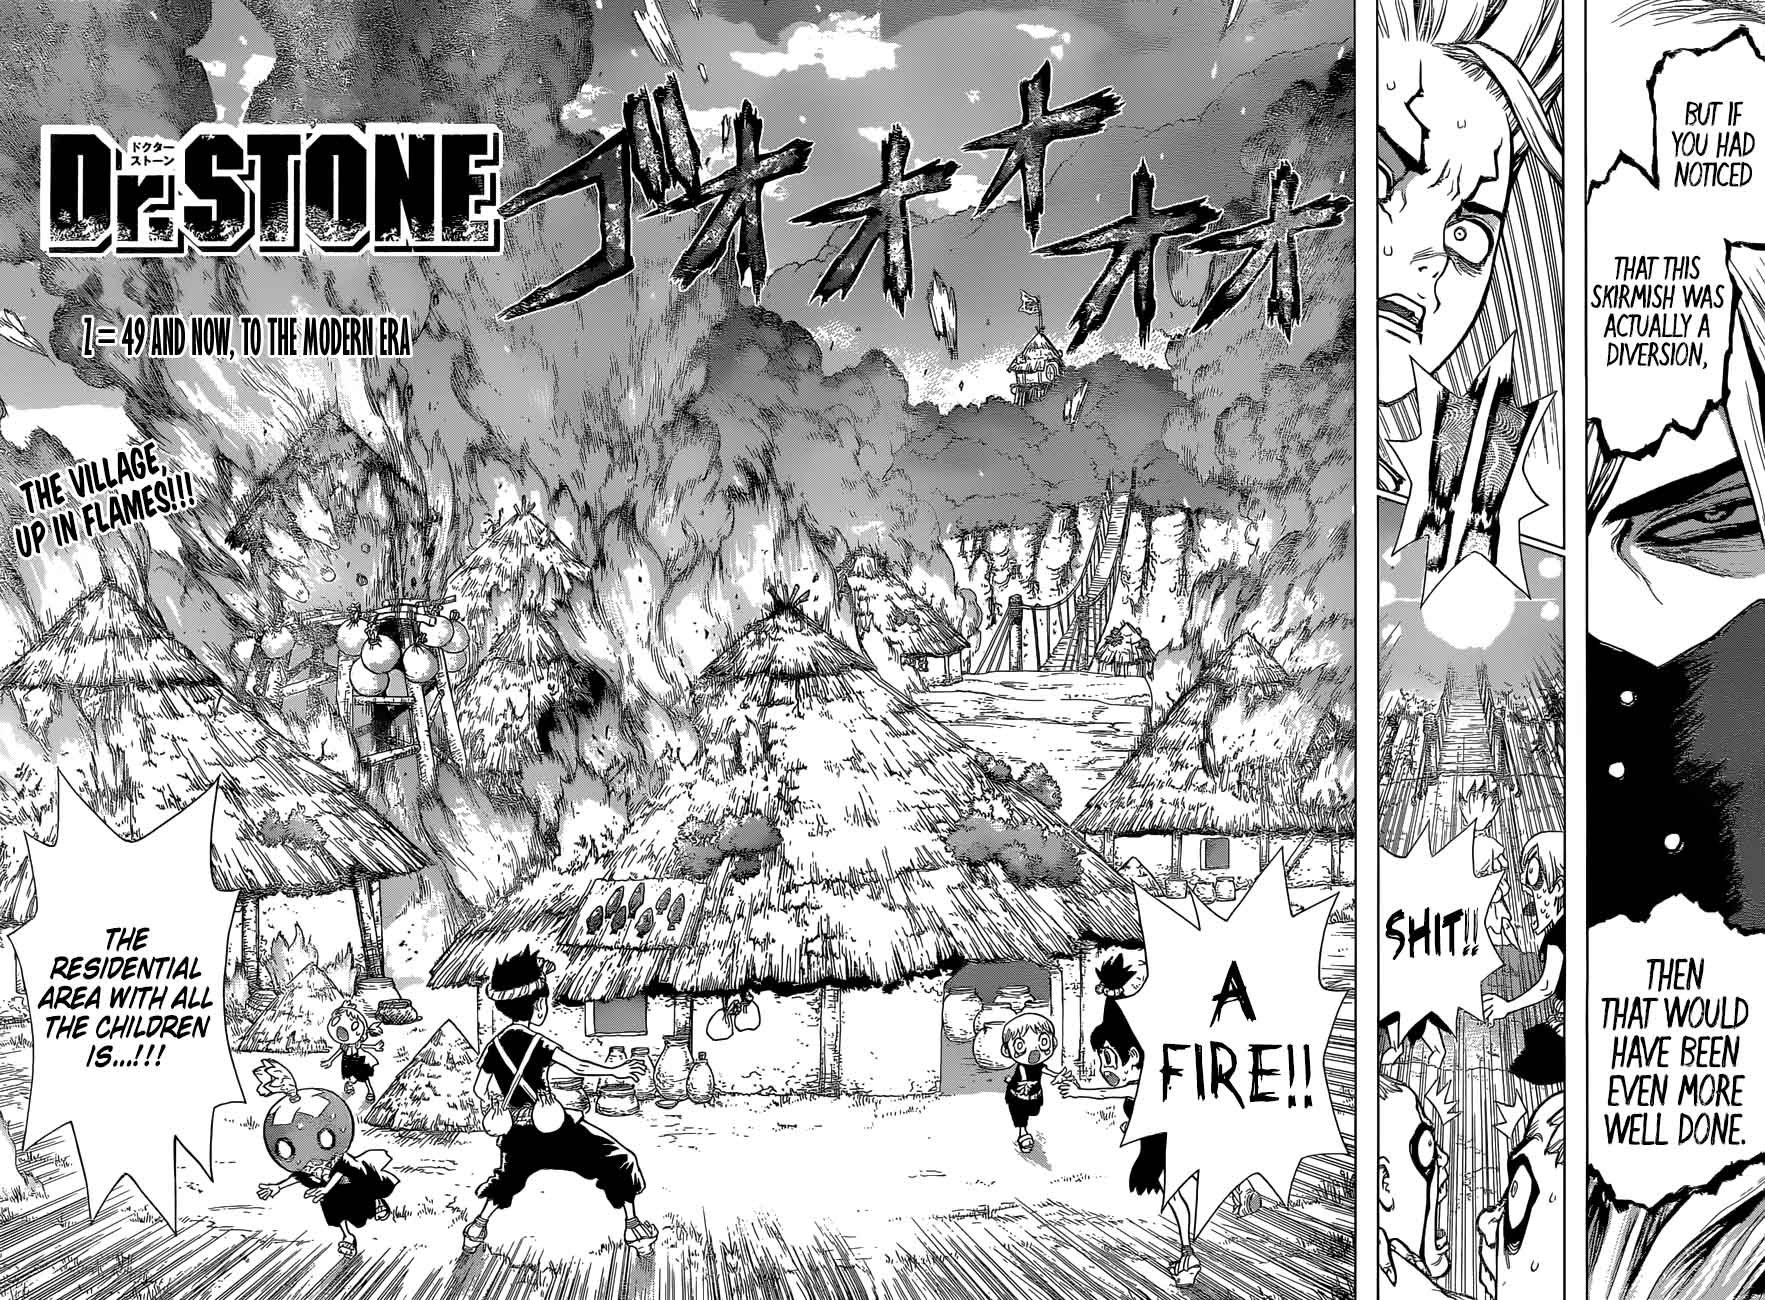 Dr. Stone : Chapter 49 - And now, to the Modern Era image 002